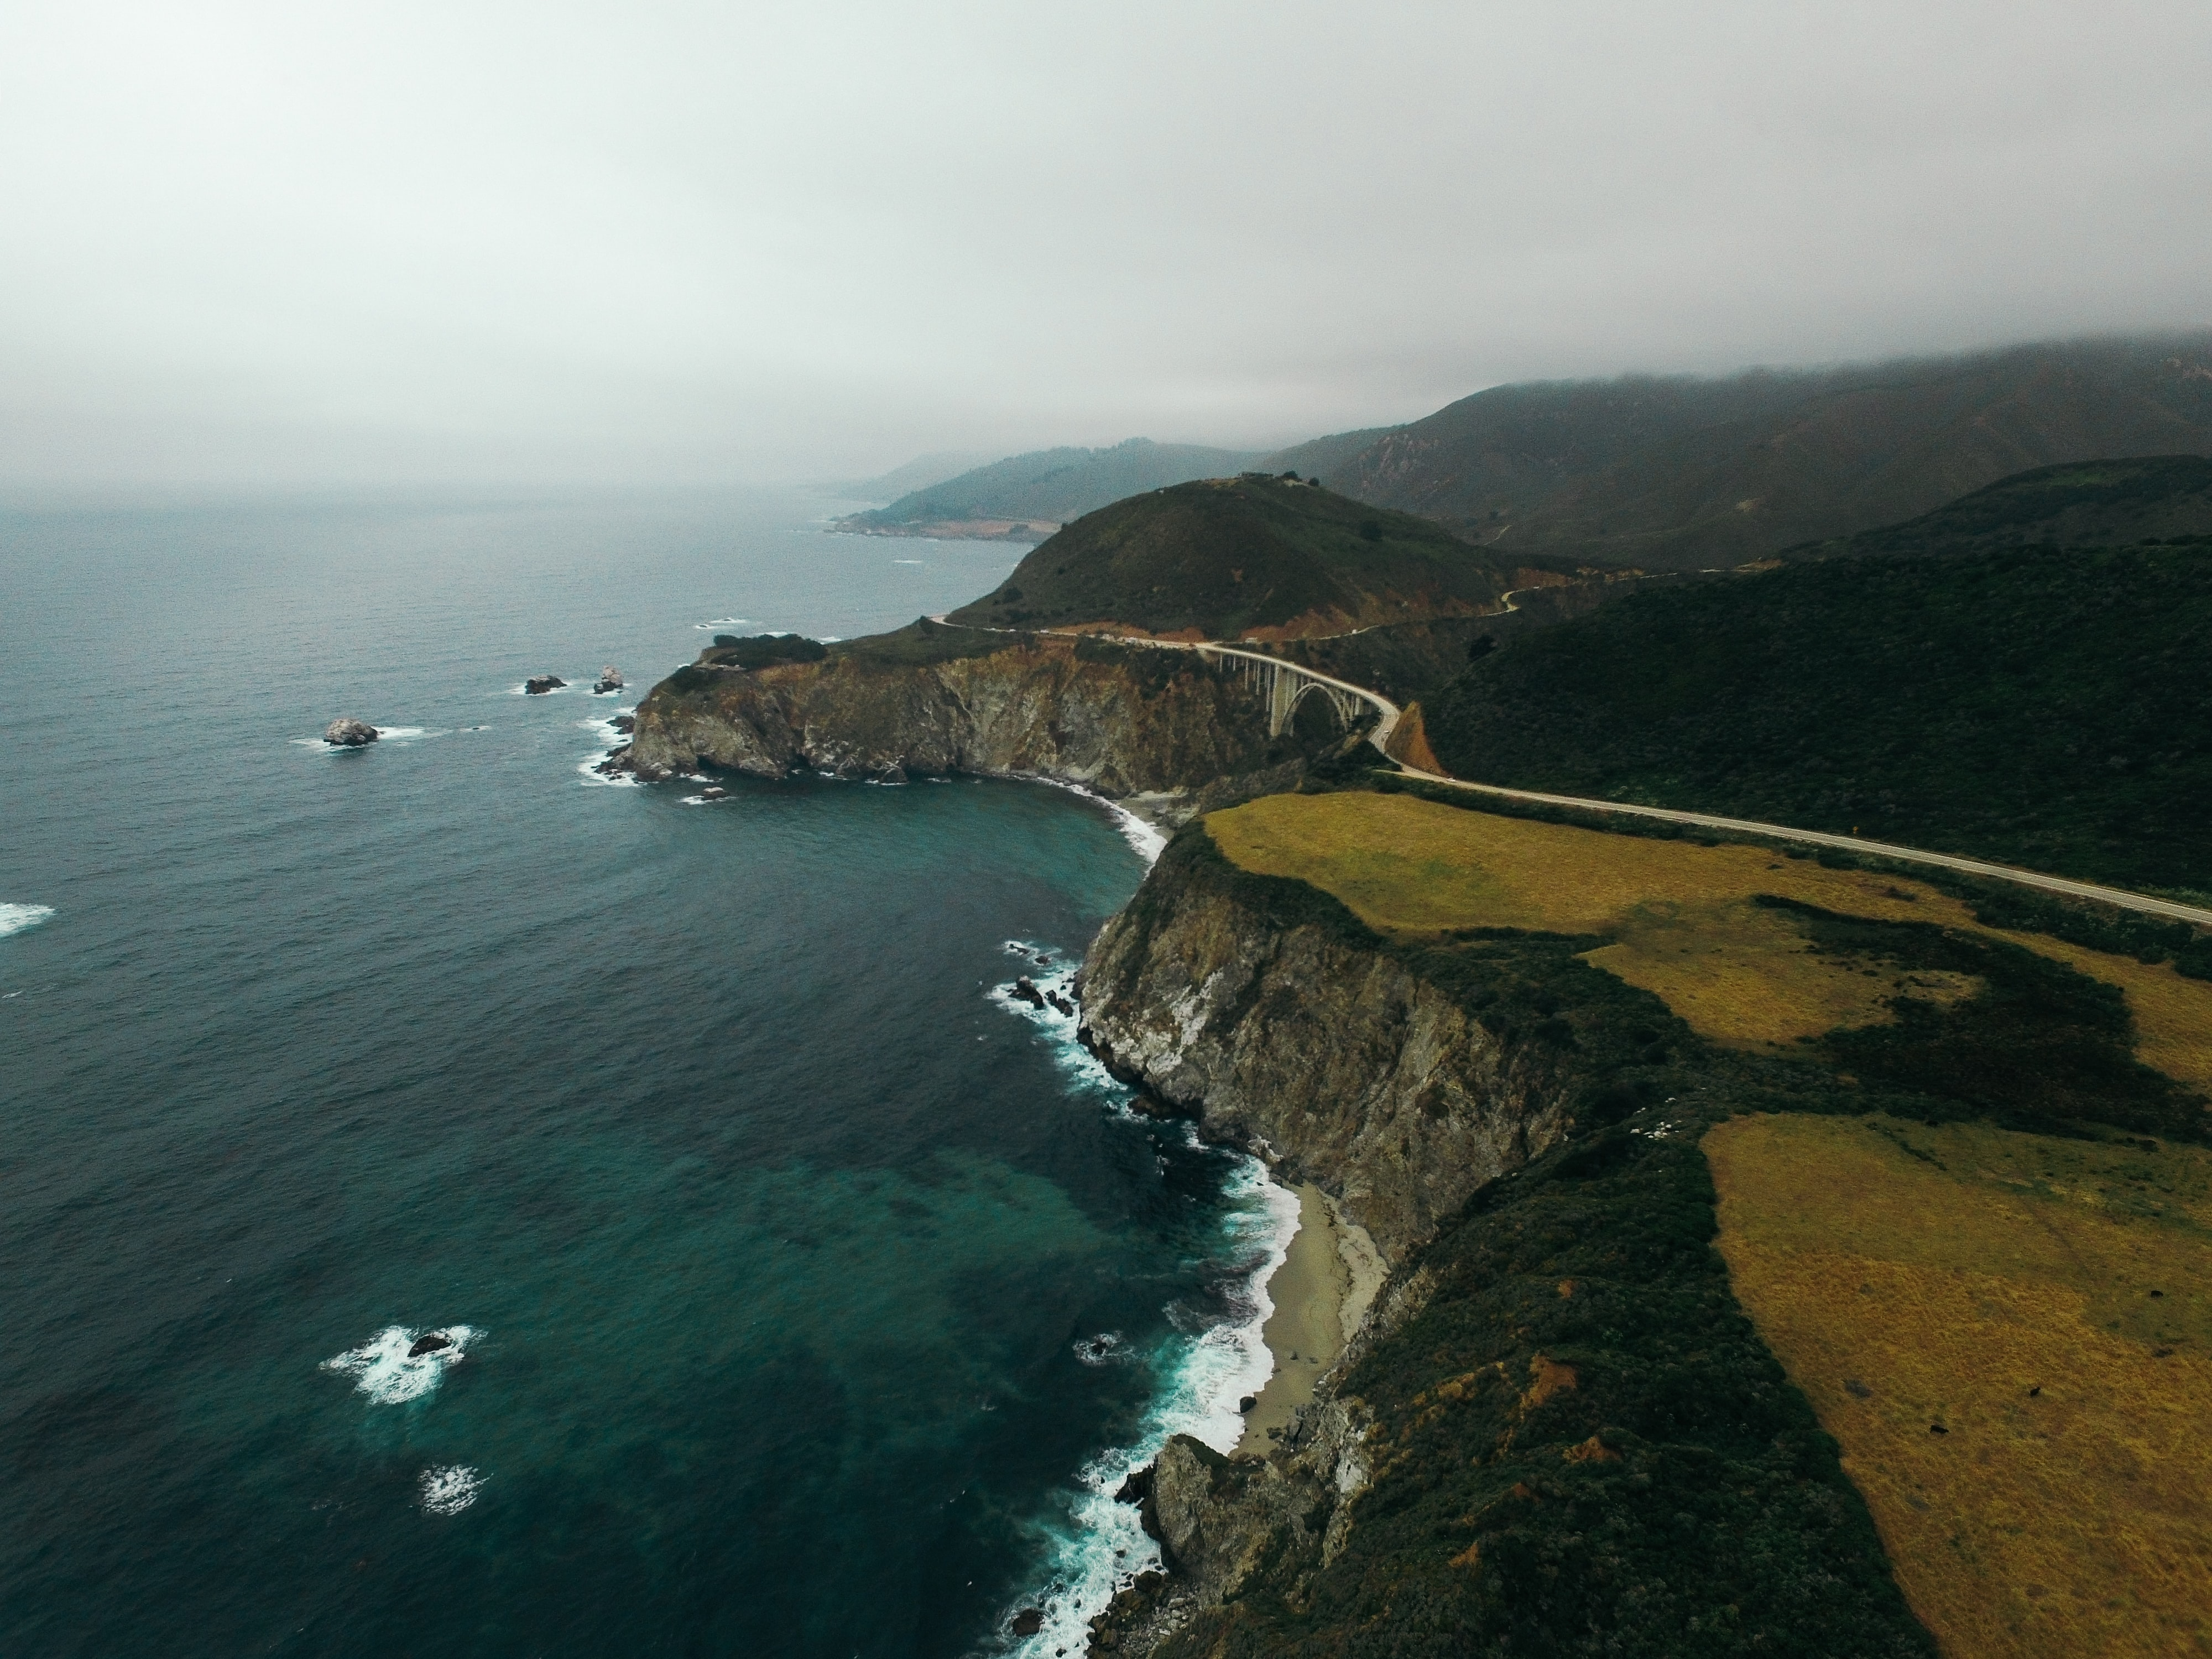 Greenery on the rocky coastline of the oceans of Big Sur